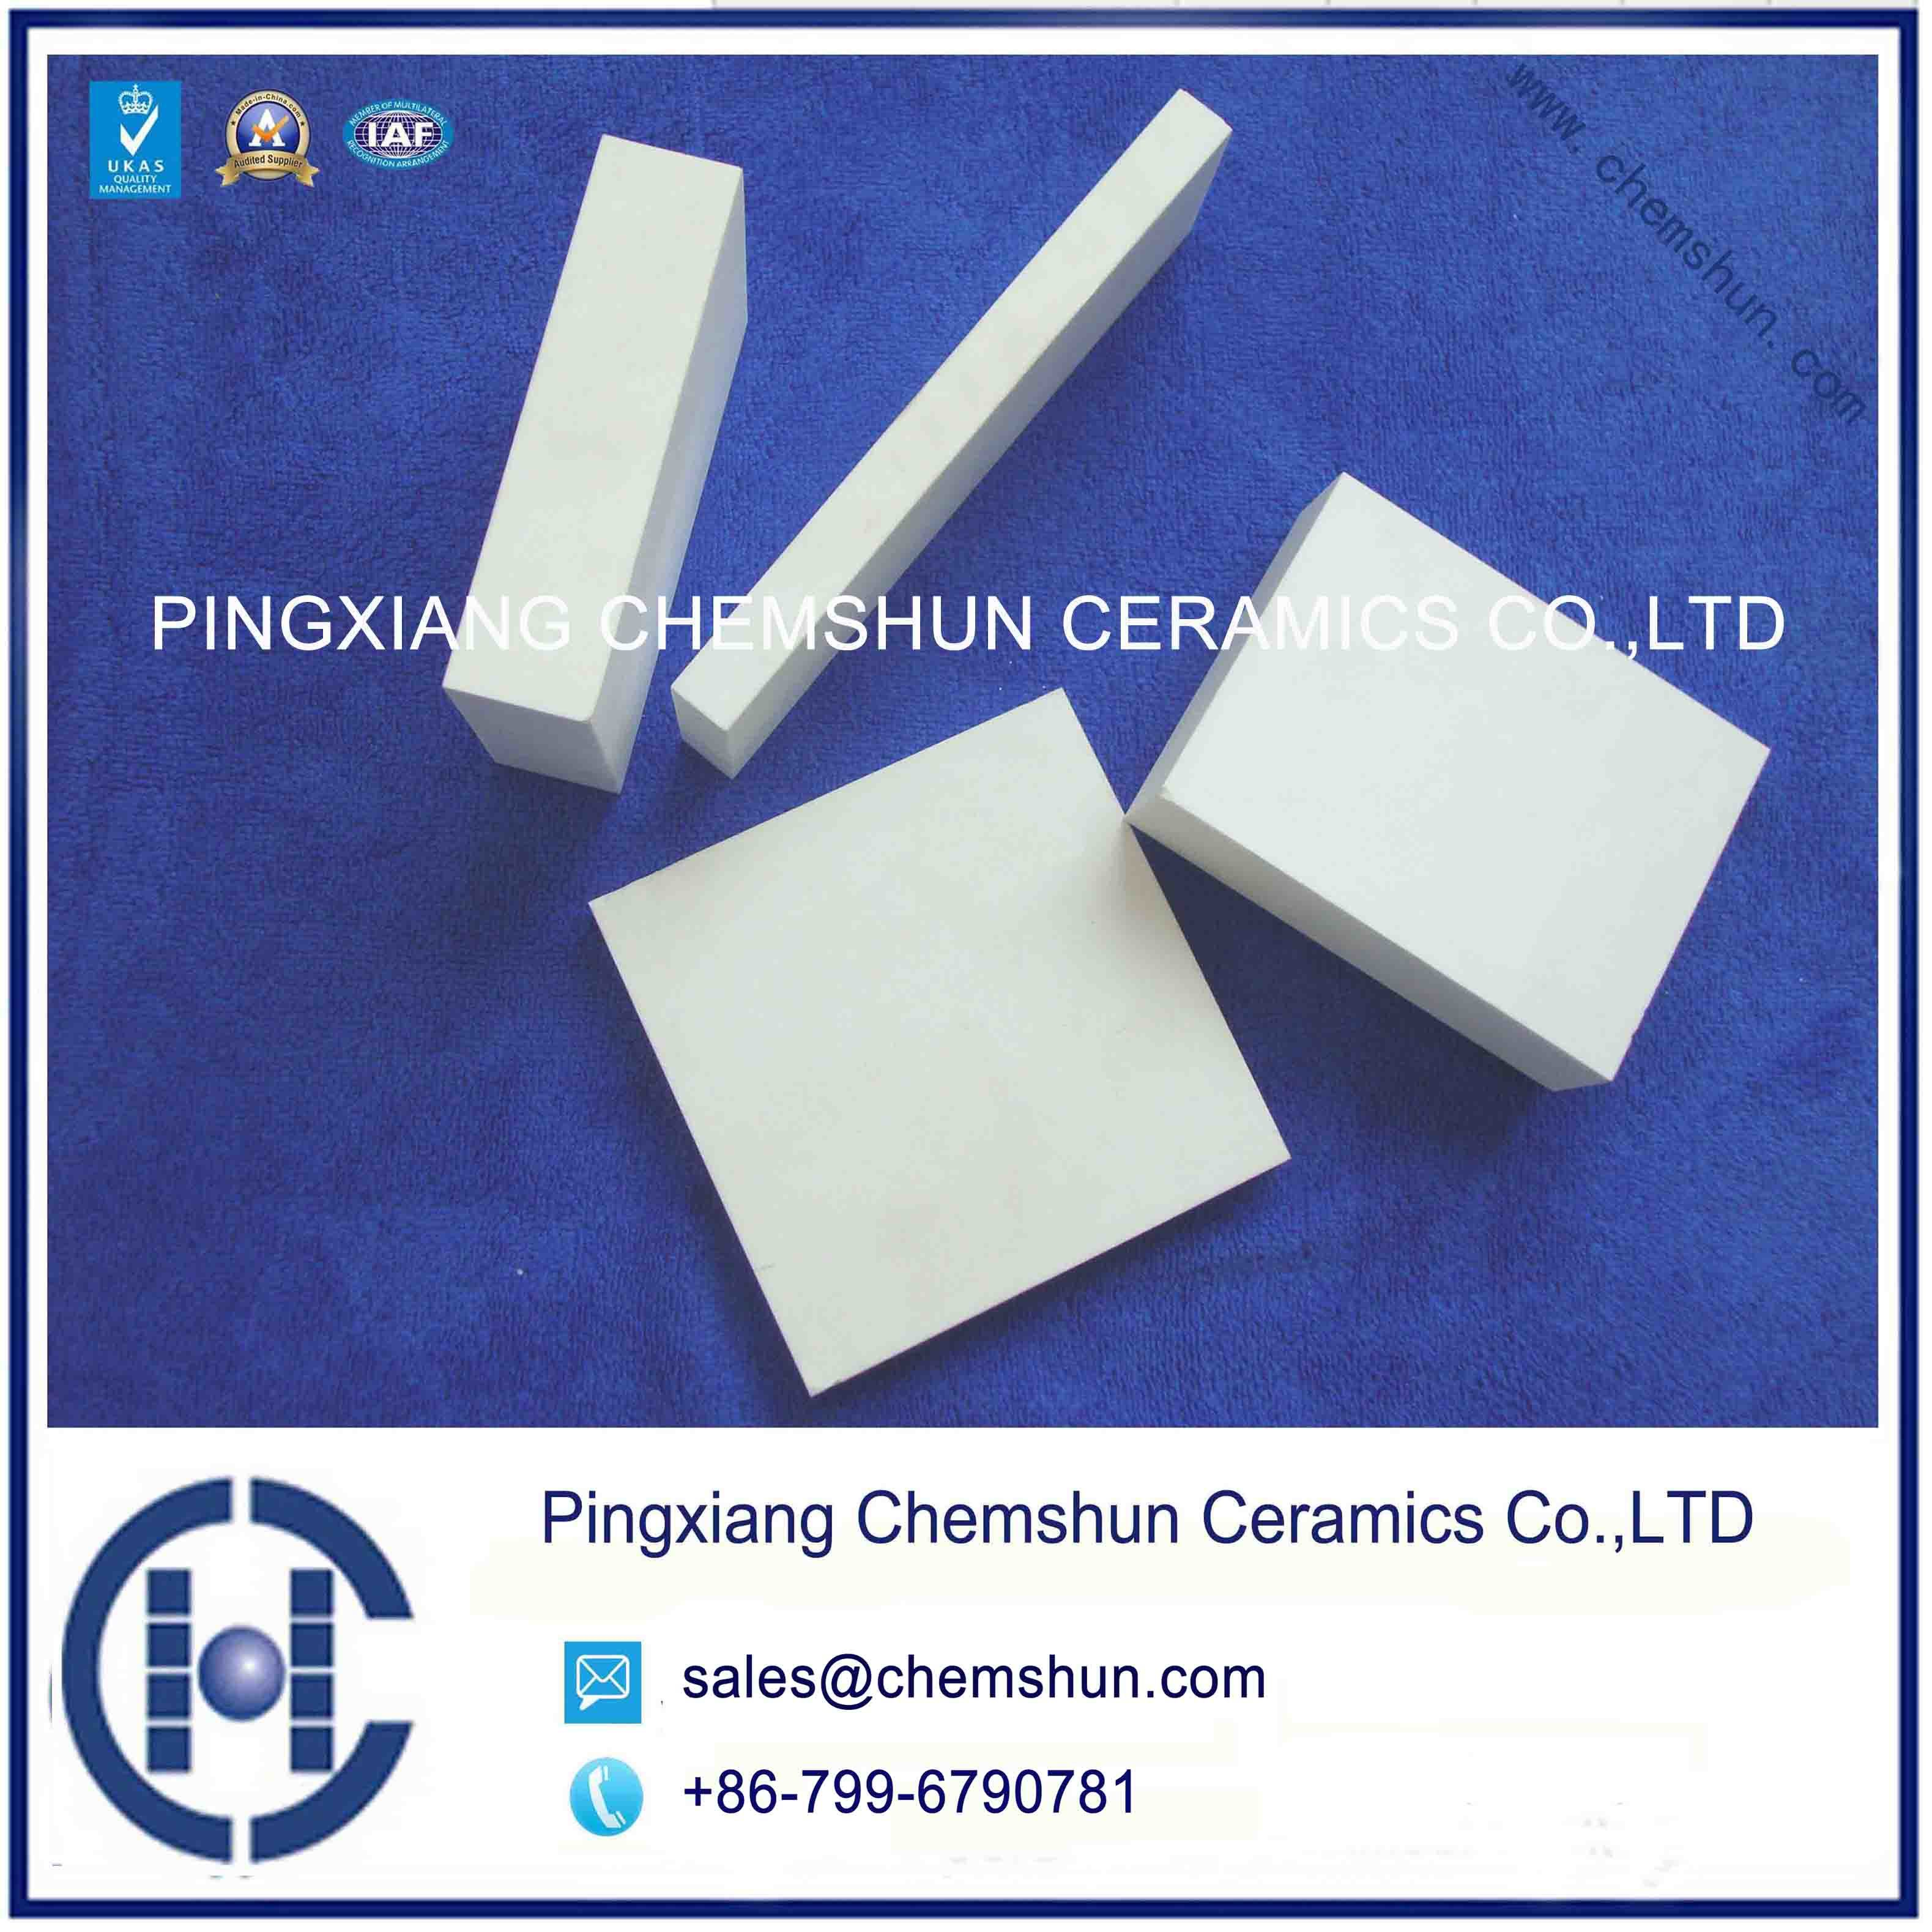 Ceramic tiles manufacturers image collections tile flooring ceramic tiles manufacturers in china image collections tile ceramic tile manufacturers uk choice image tile flooring dailygadgetfo Images